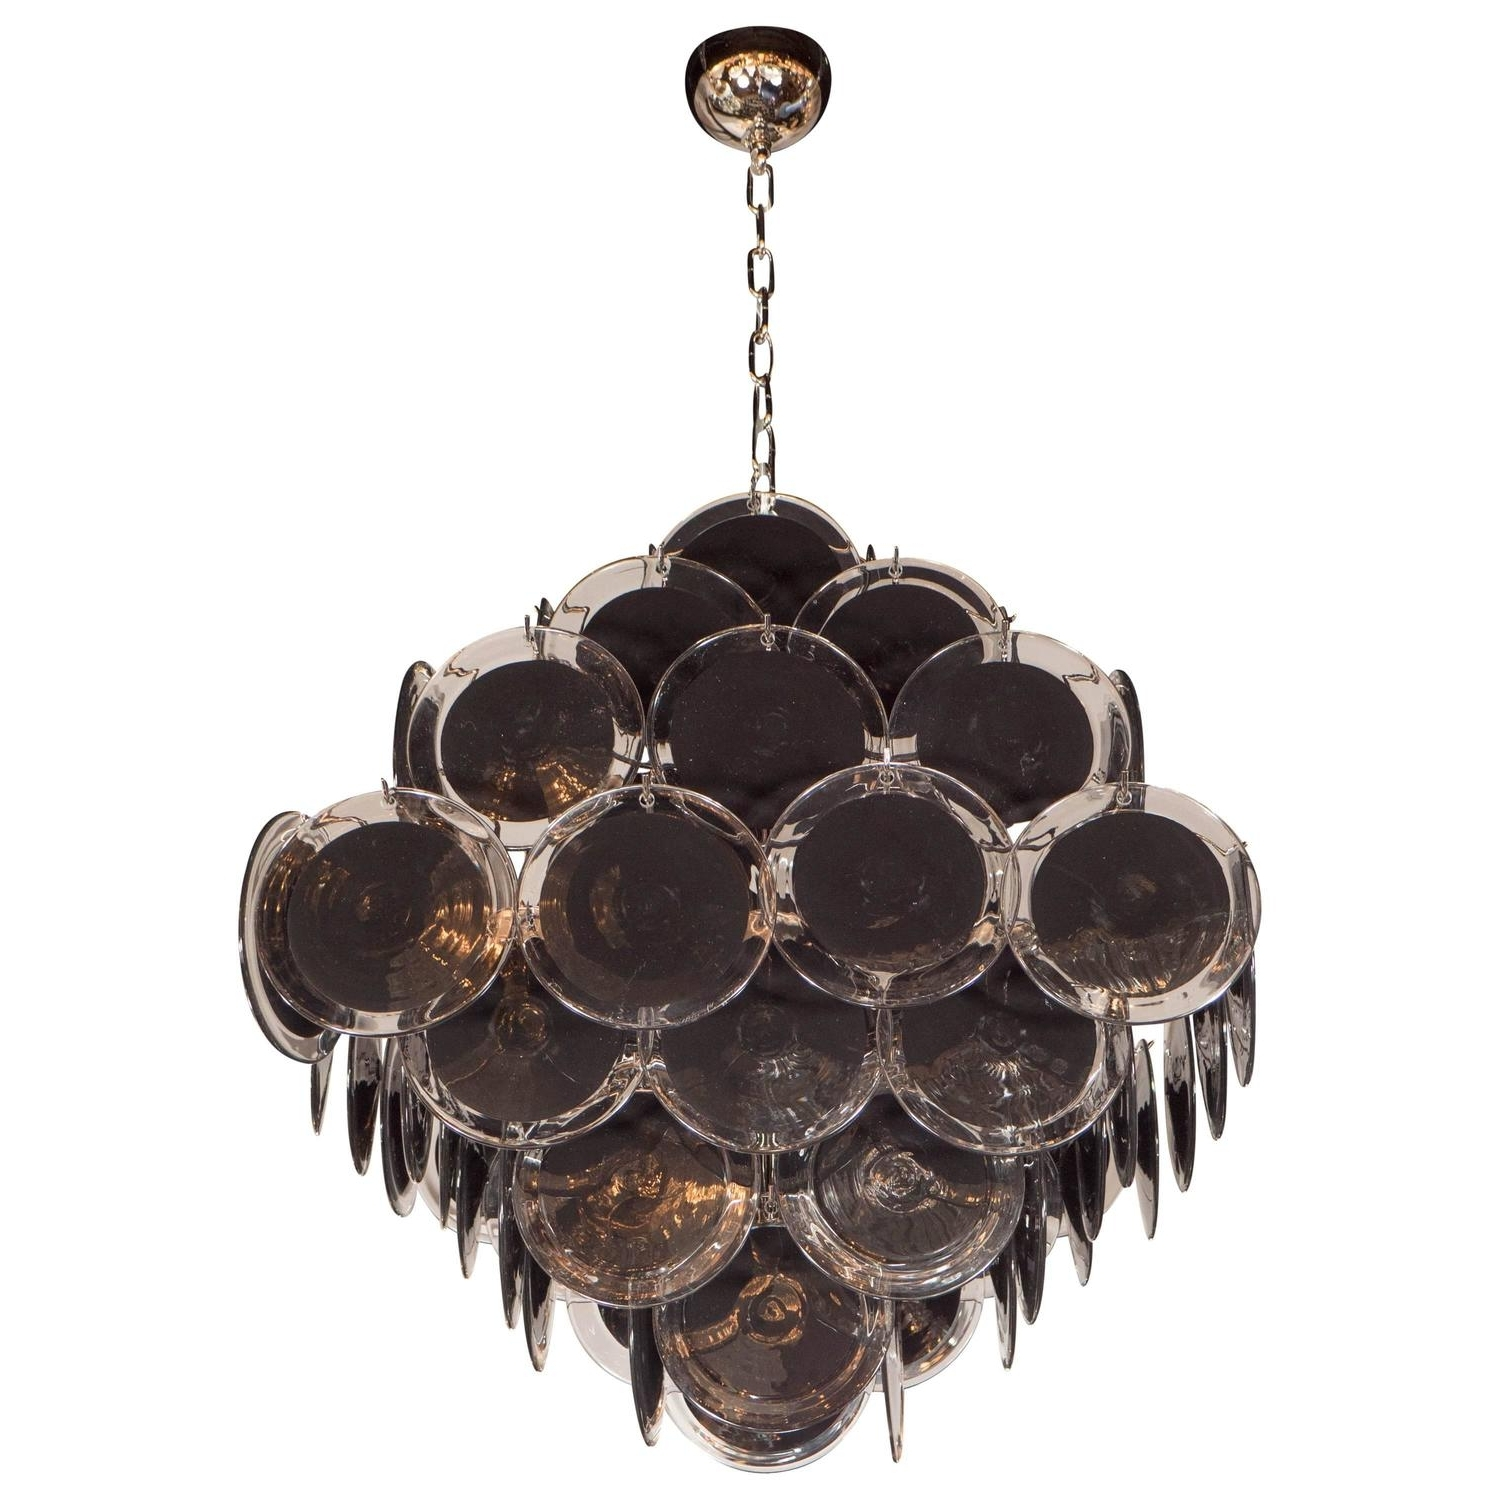 Black Glass Chandelier Throughout Well Known Ultra Chic Modernist Diamond Shaped Black Murano Glass Chandelier (View 3 of 15)